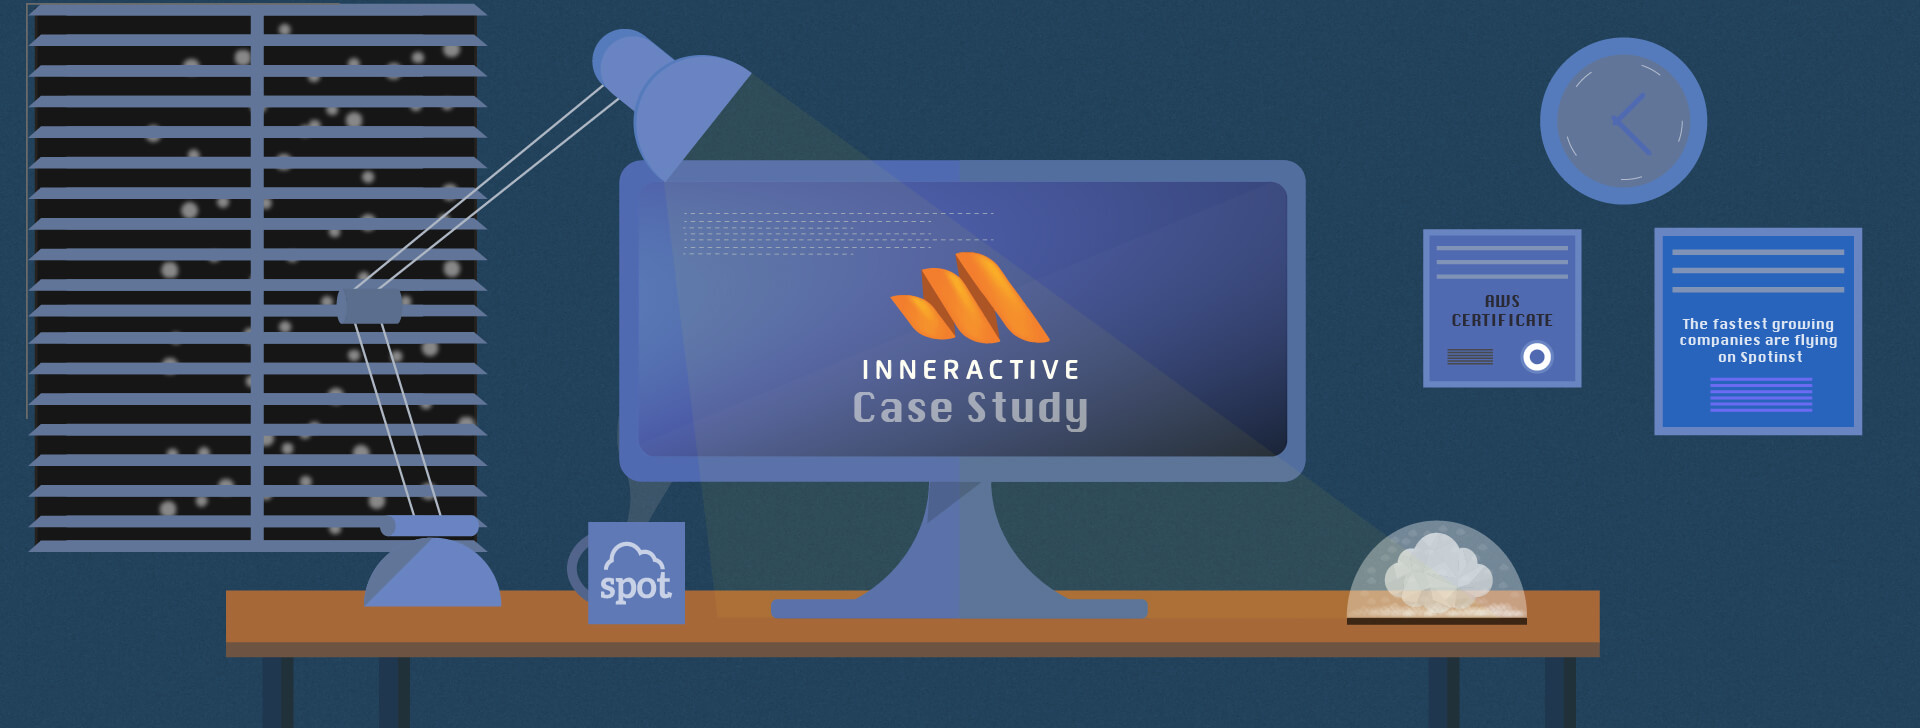 AWS Case Study – Inneractive